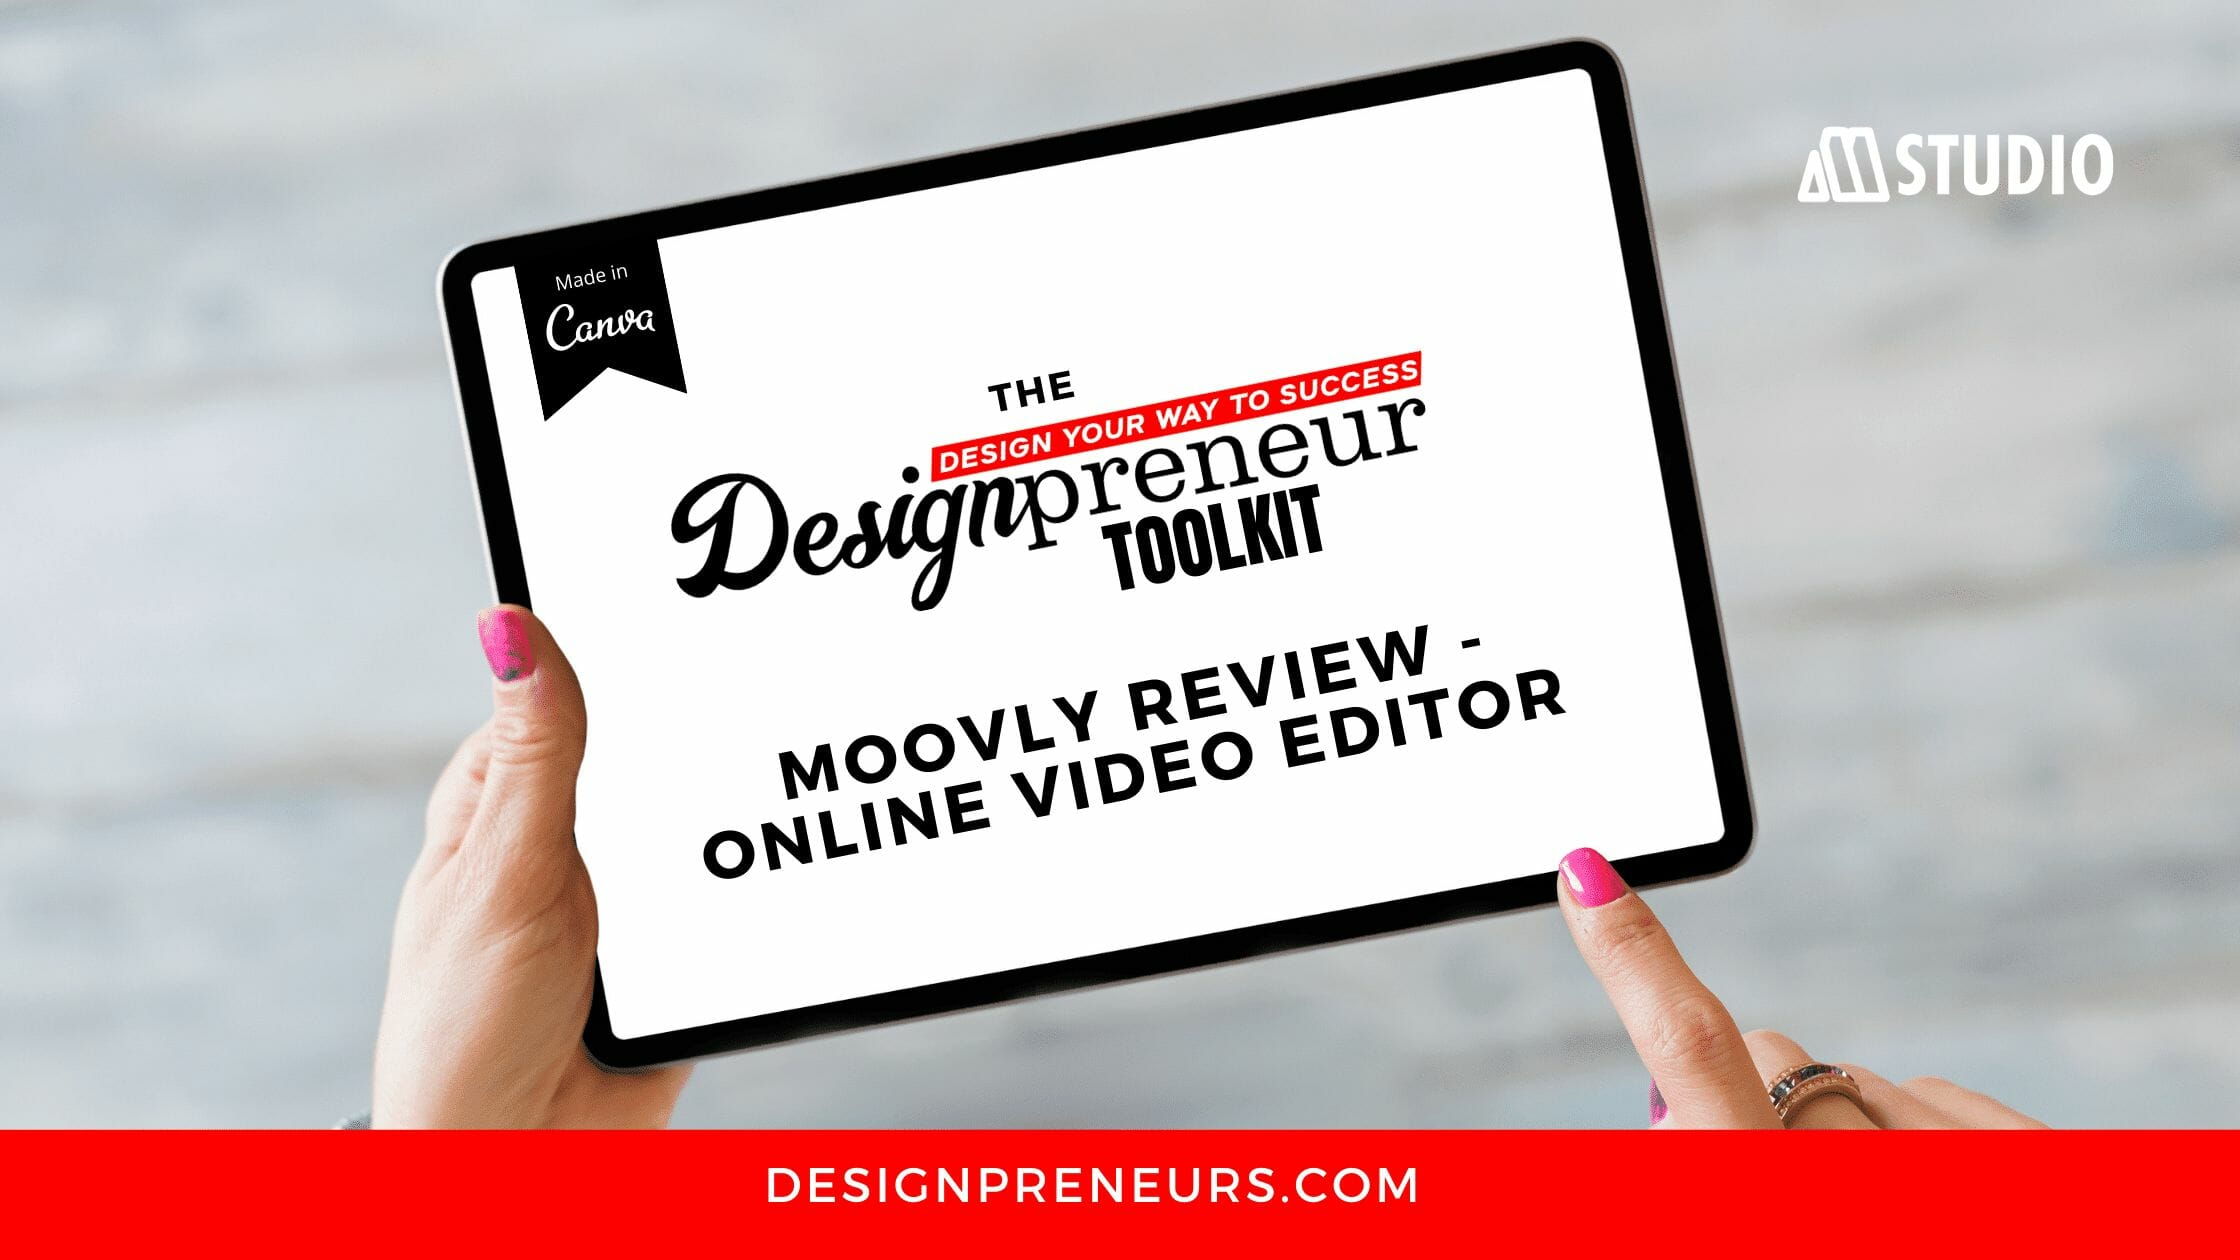 Moovly Review – Online Video Editor